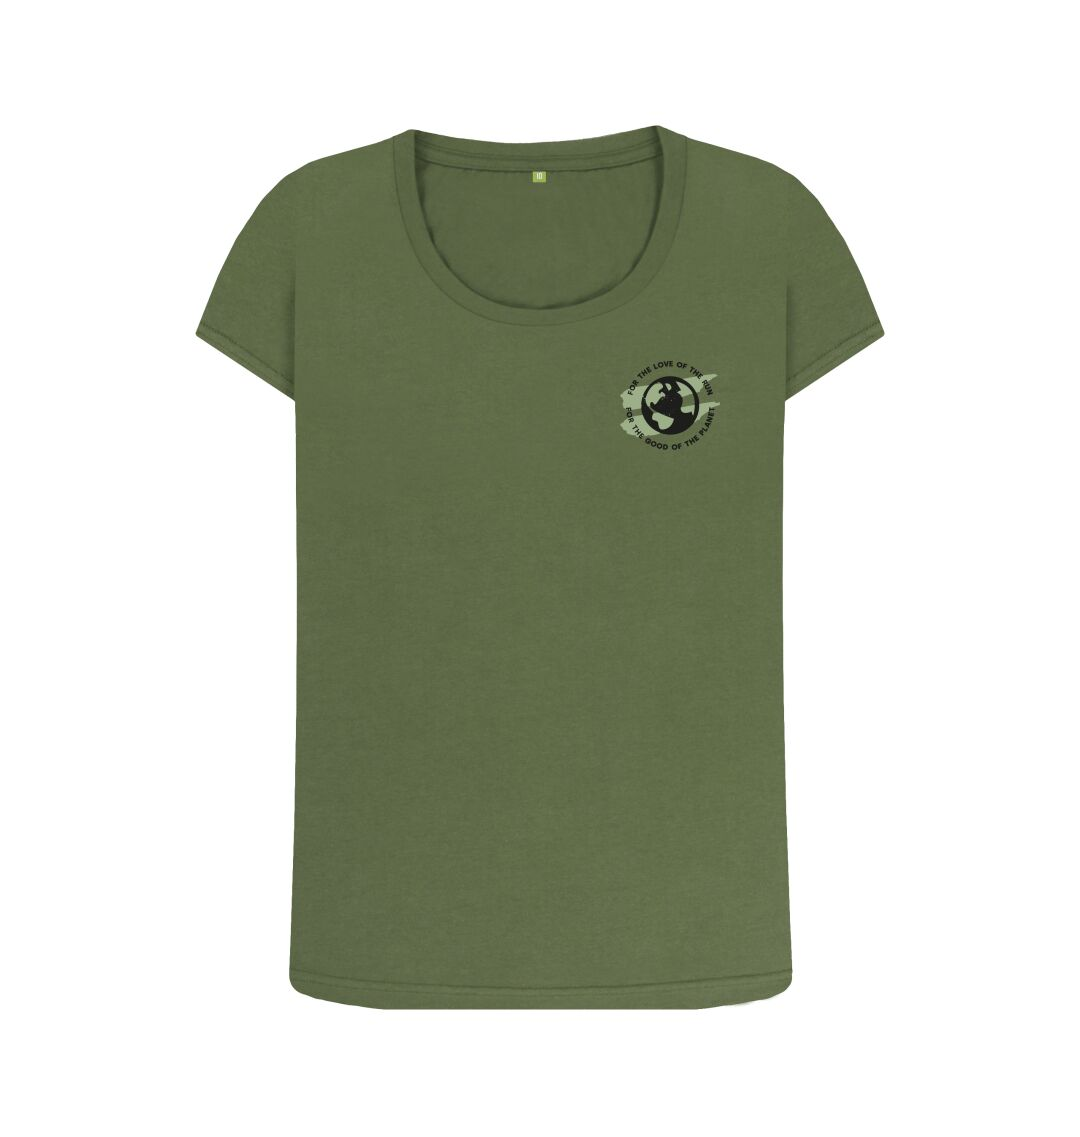 Khaki Earth Scoop Tee in Terrain - Women's